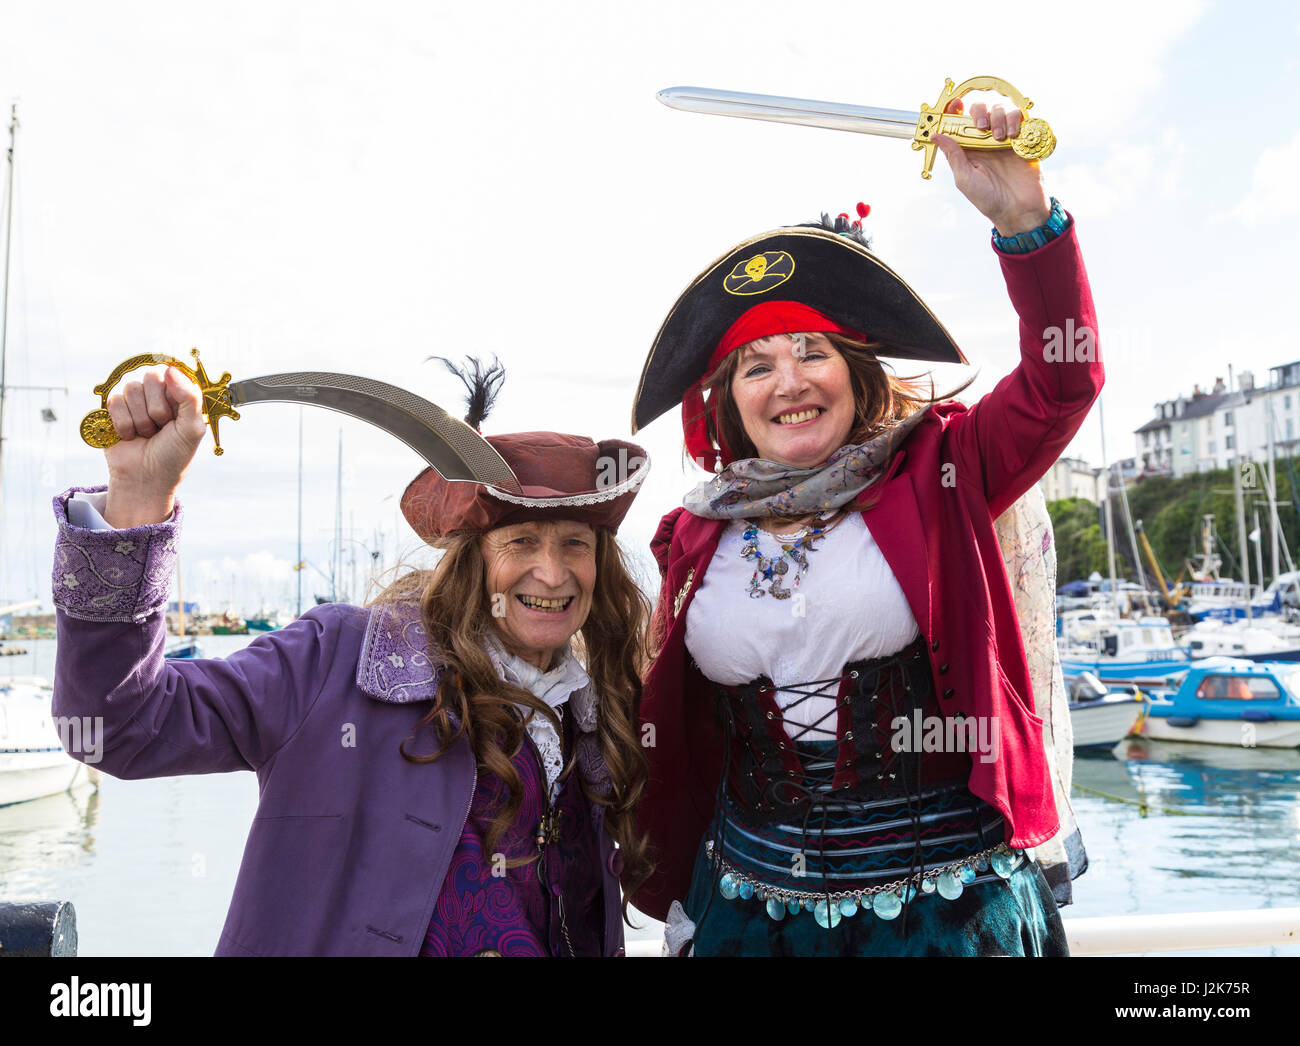 brixham-devon-29th-apr-17pirates-l-joann